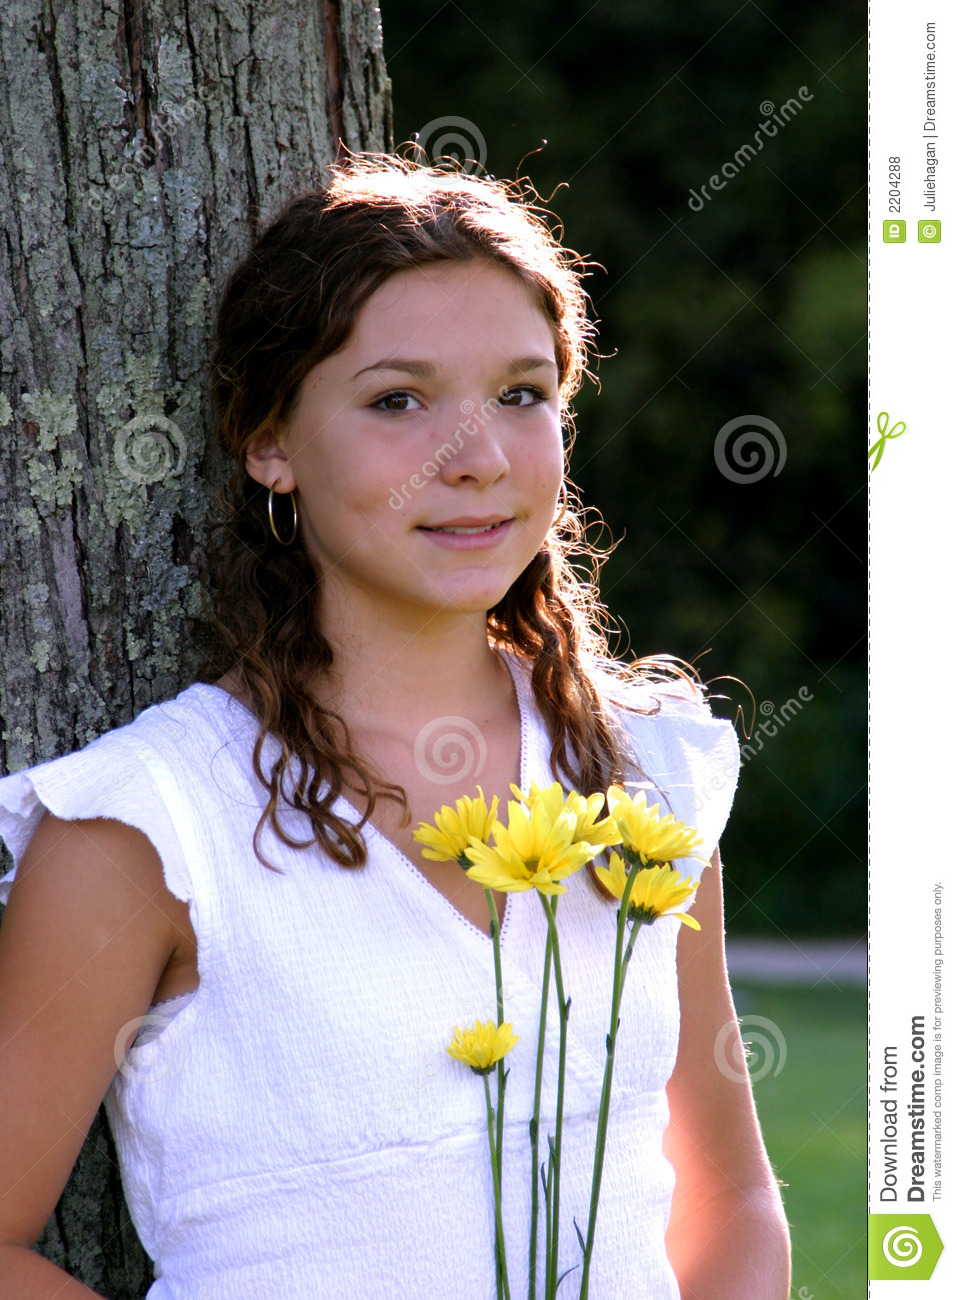 Pretty Teen Girl Stock Photo. Image Of People, Background